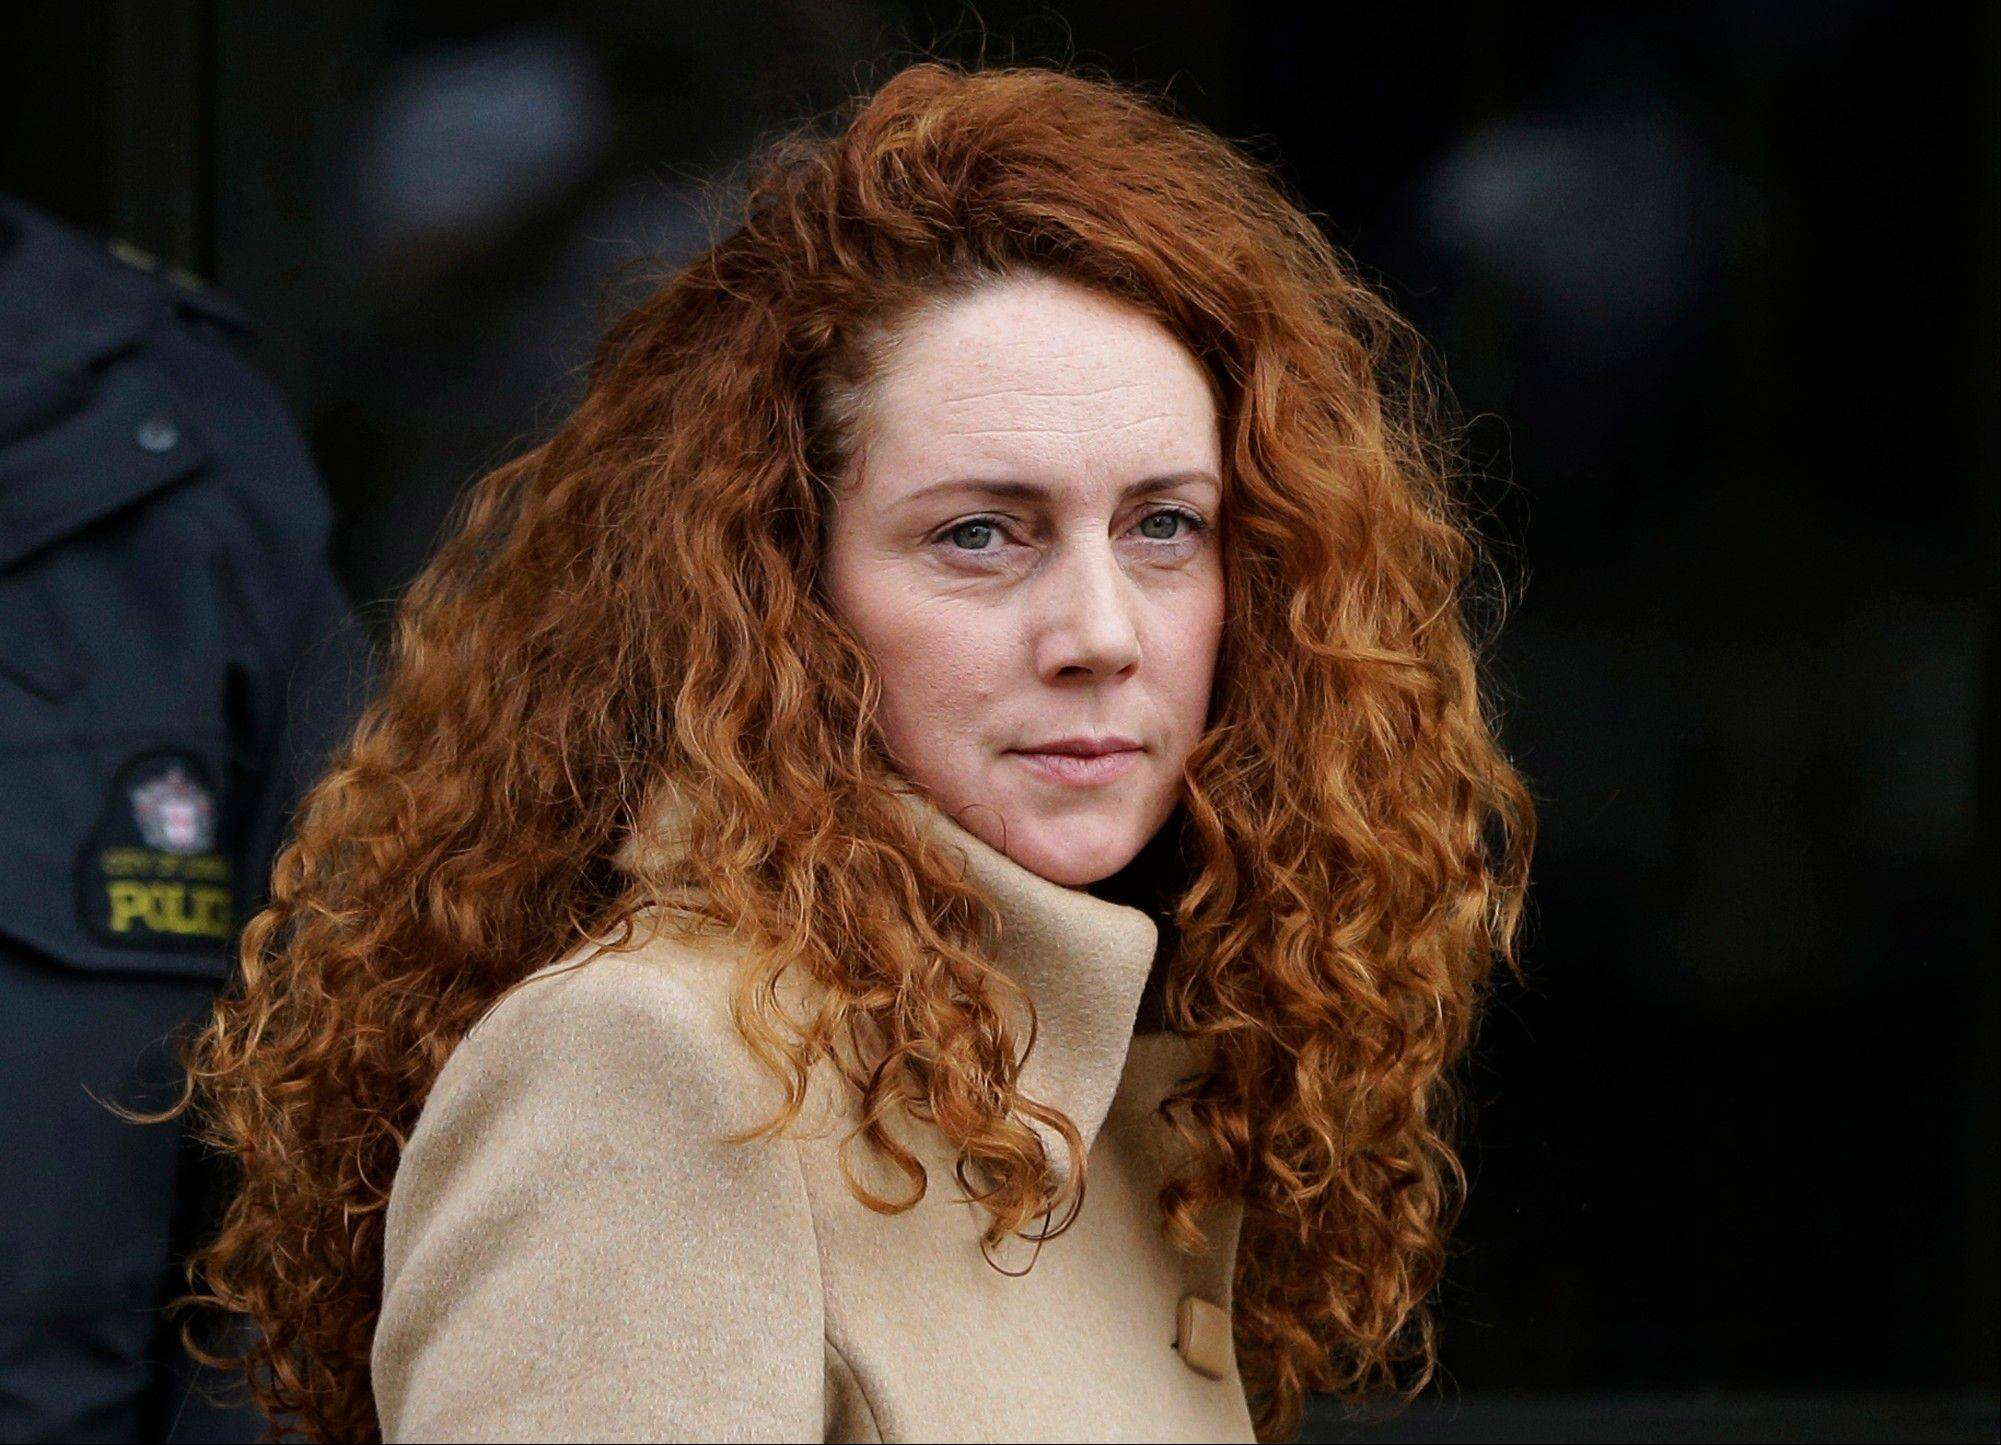 Rebekah Brooks, former chief of News Corp.�s British operations, leaves the Old Bailey court in London. Two former confidants of Britain�s prime minister, former tabloid editors Andy Coulson and Brooks, were charged Nov. 20 with conspiring to pay public officials in exchange for stories and information.